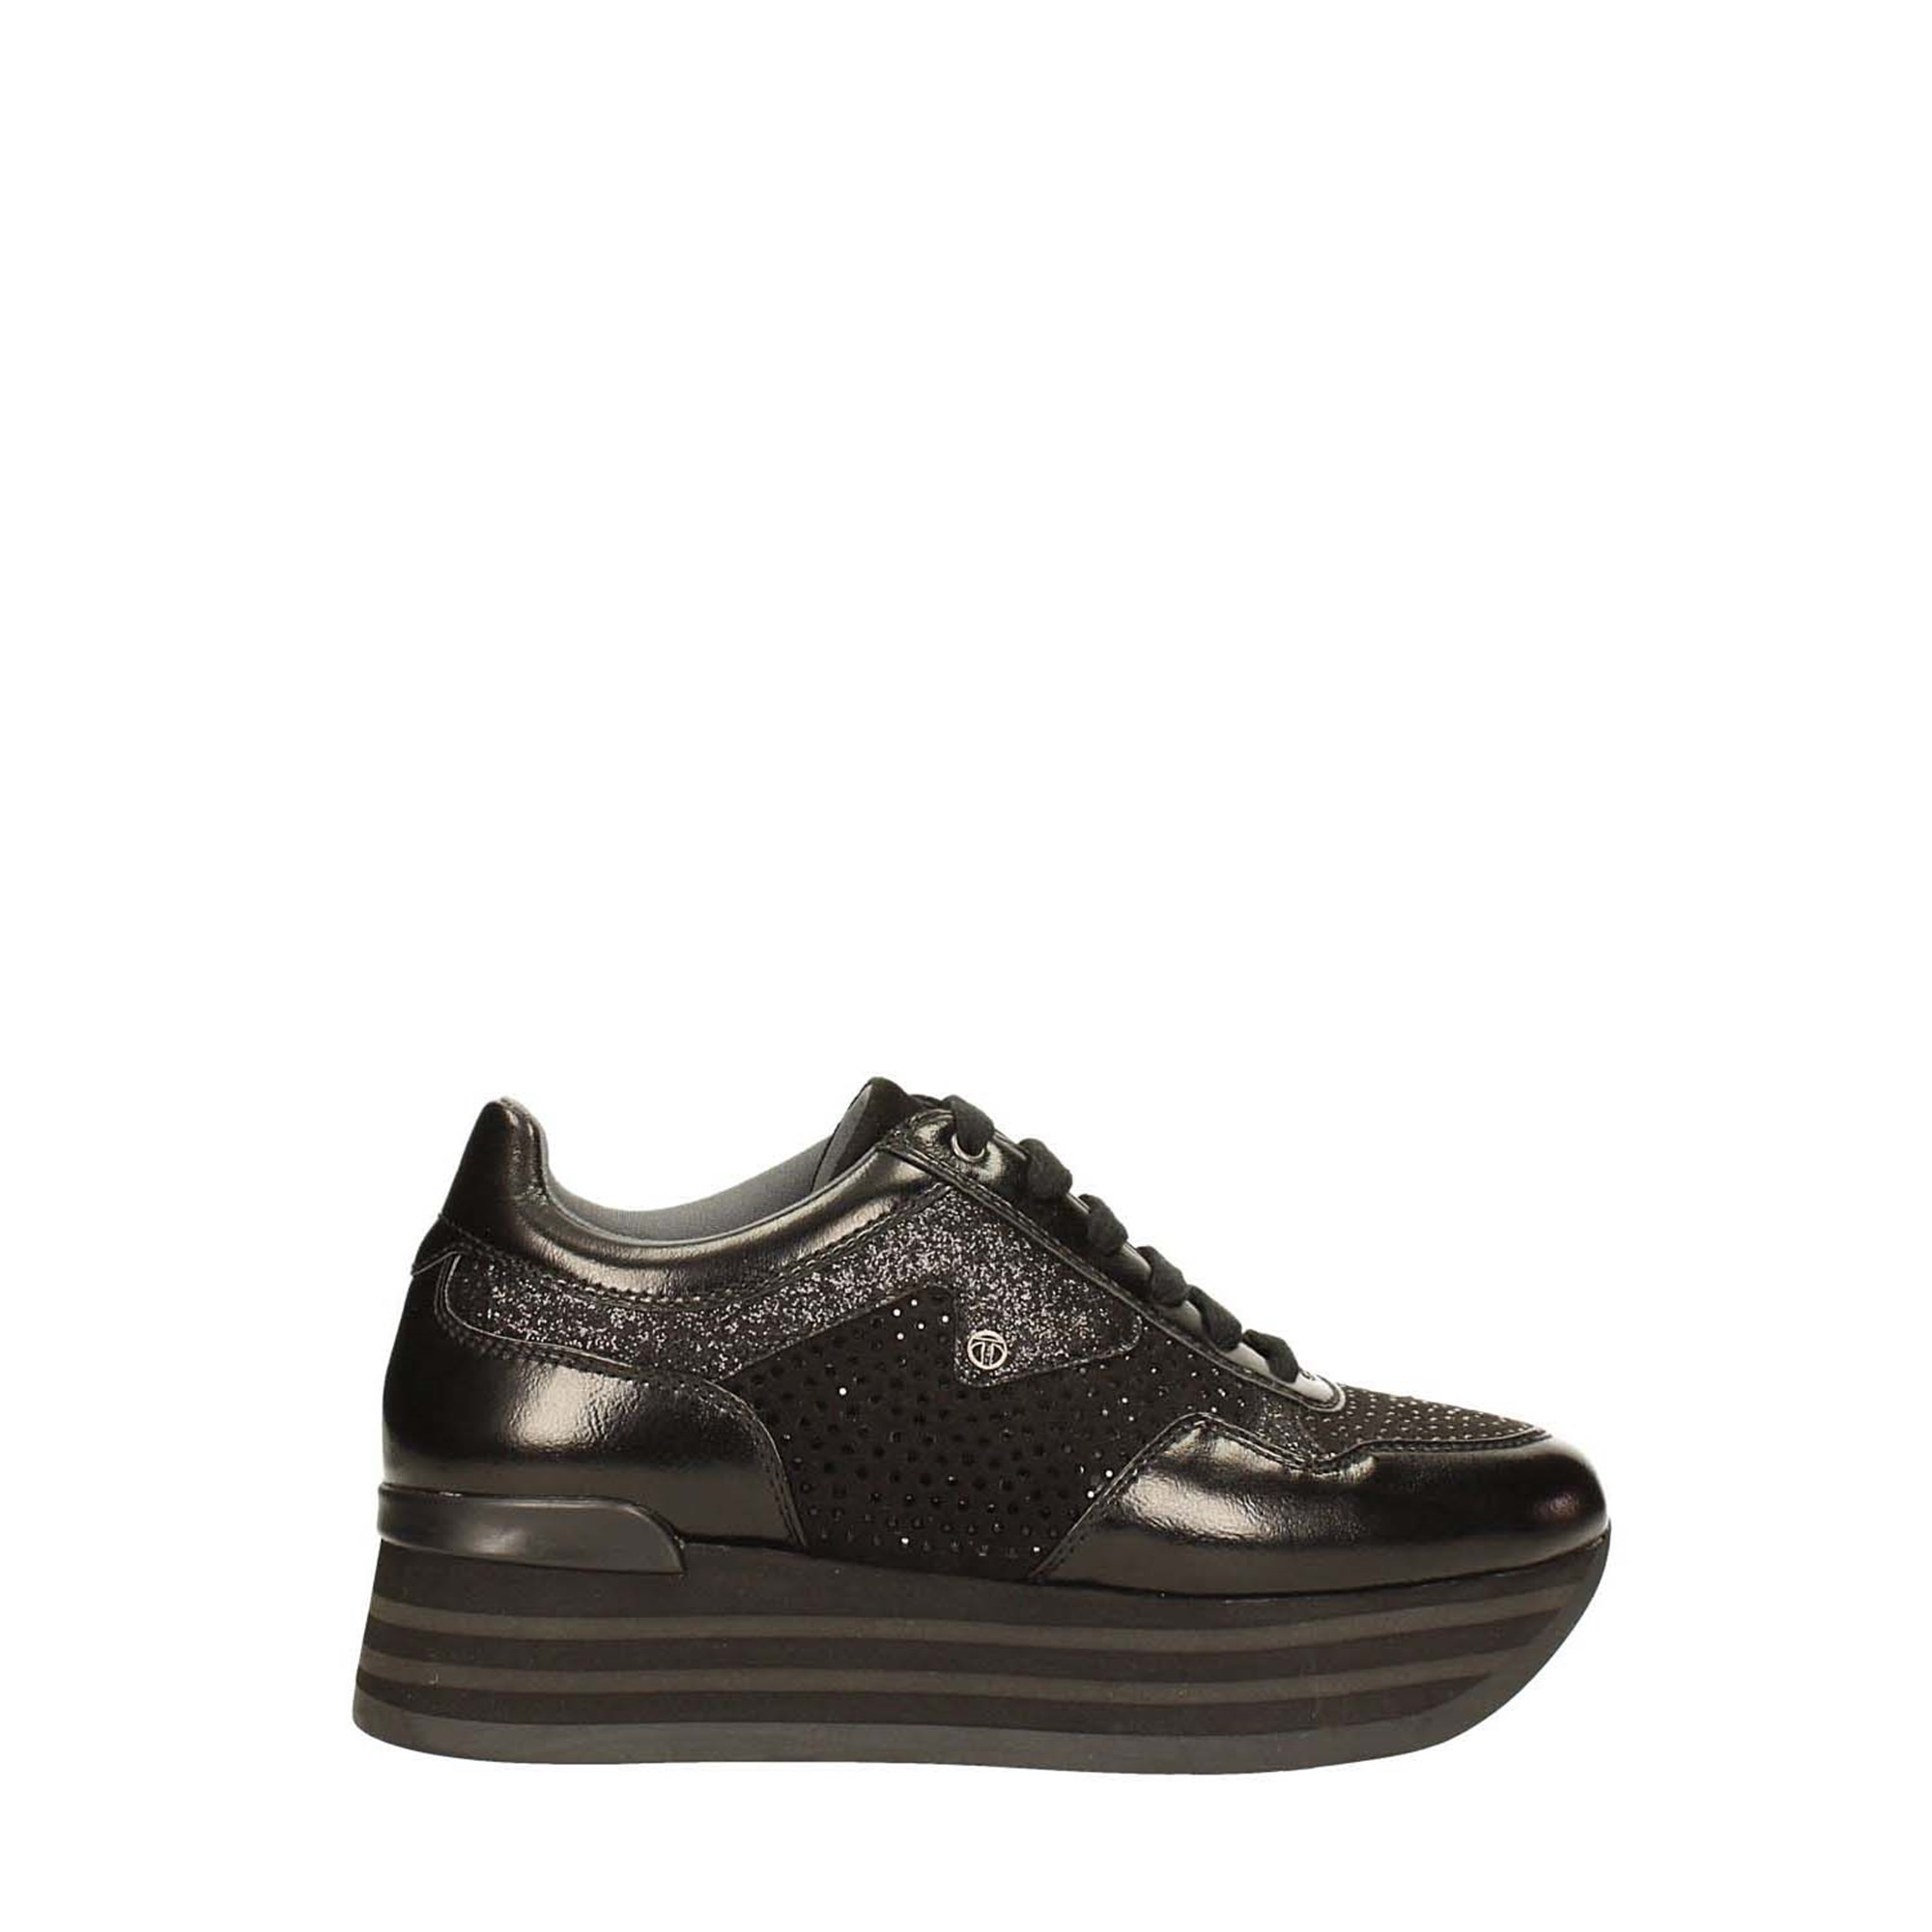 Tata Italia Shoes Woman Sneakers 910512-W